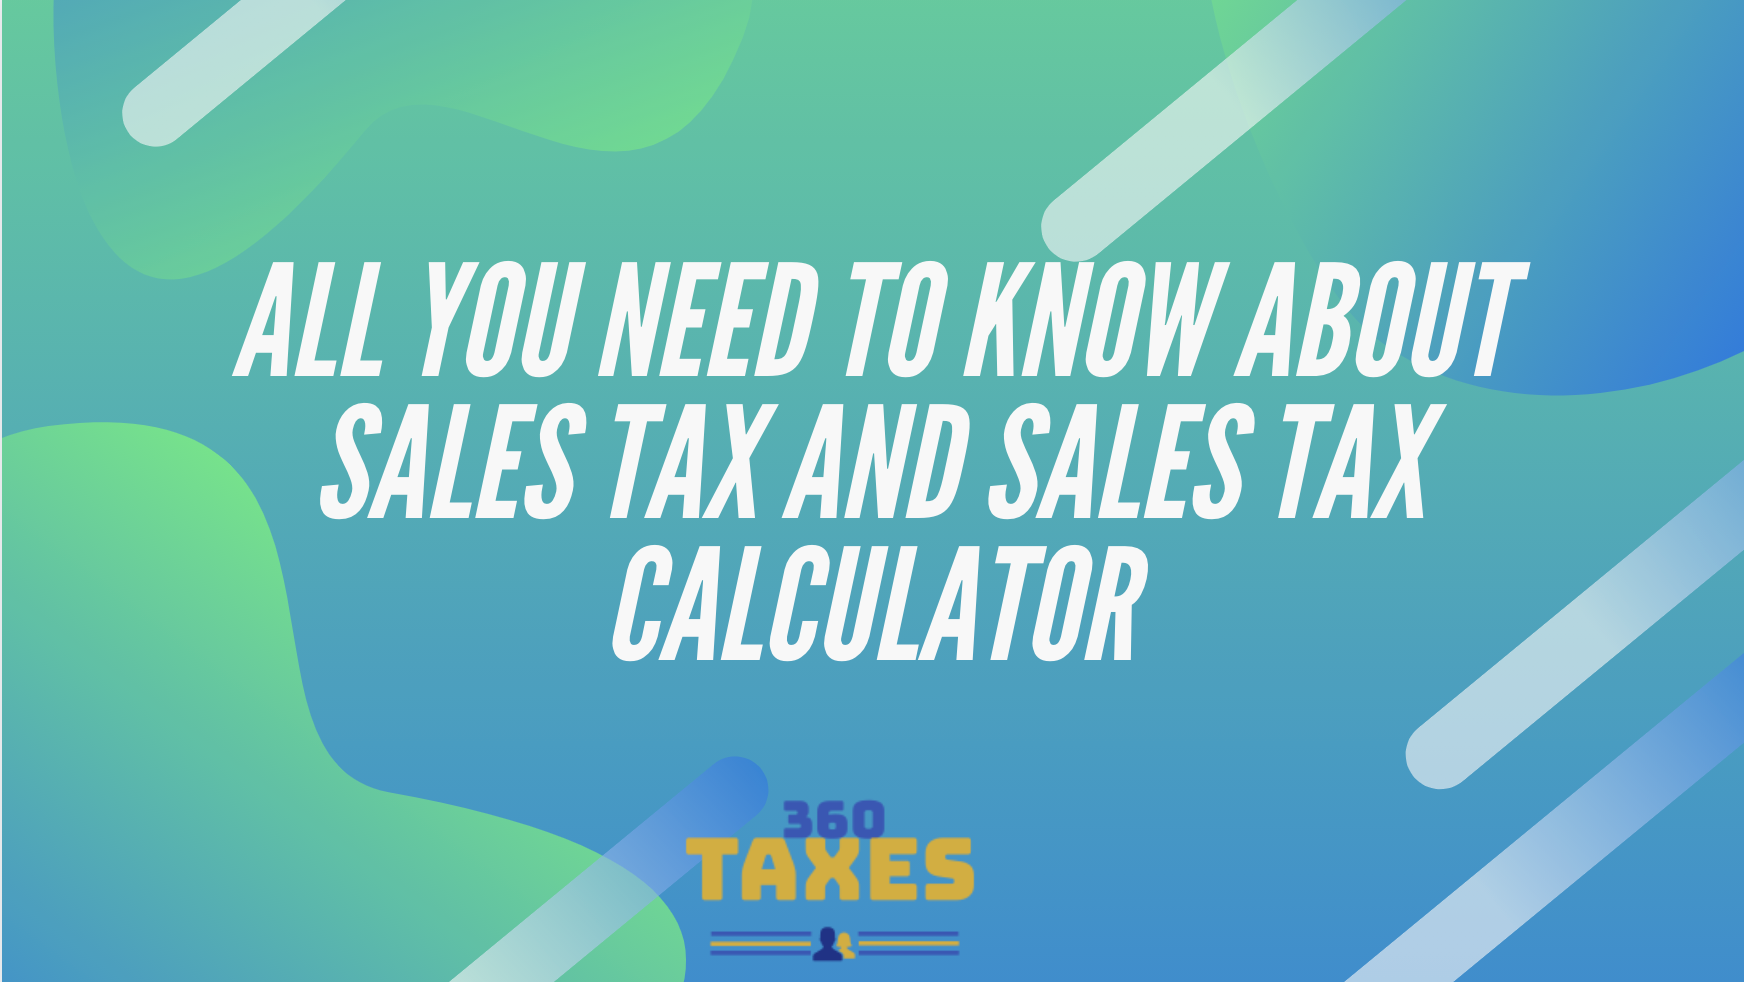 All You Need To Know About Sales Tax And Sales Tax Calculator